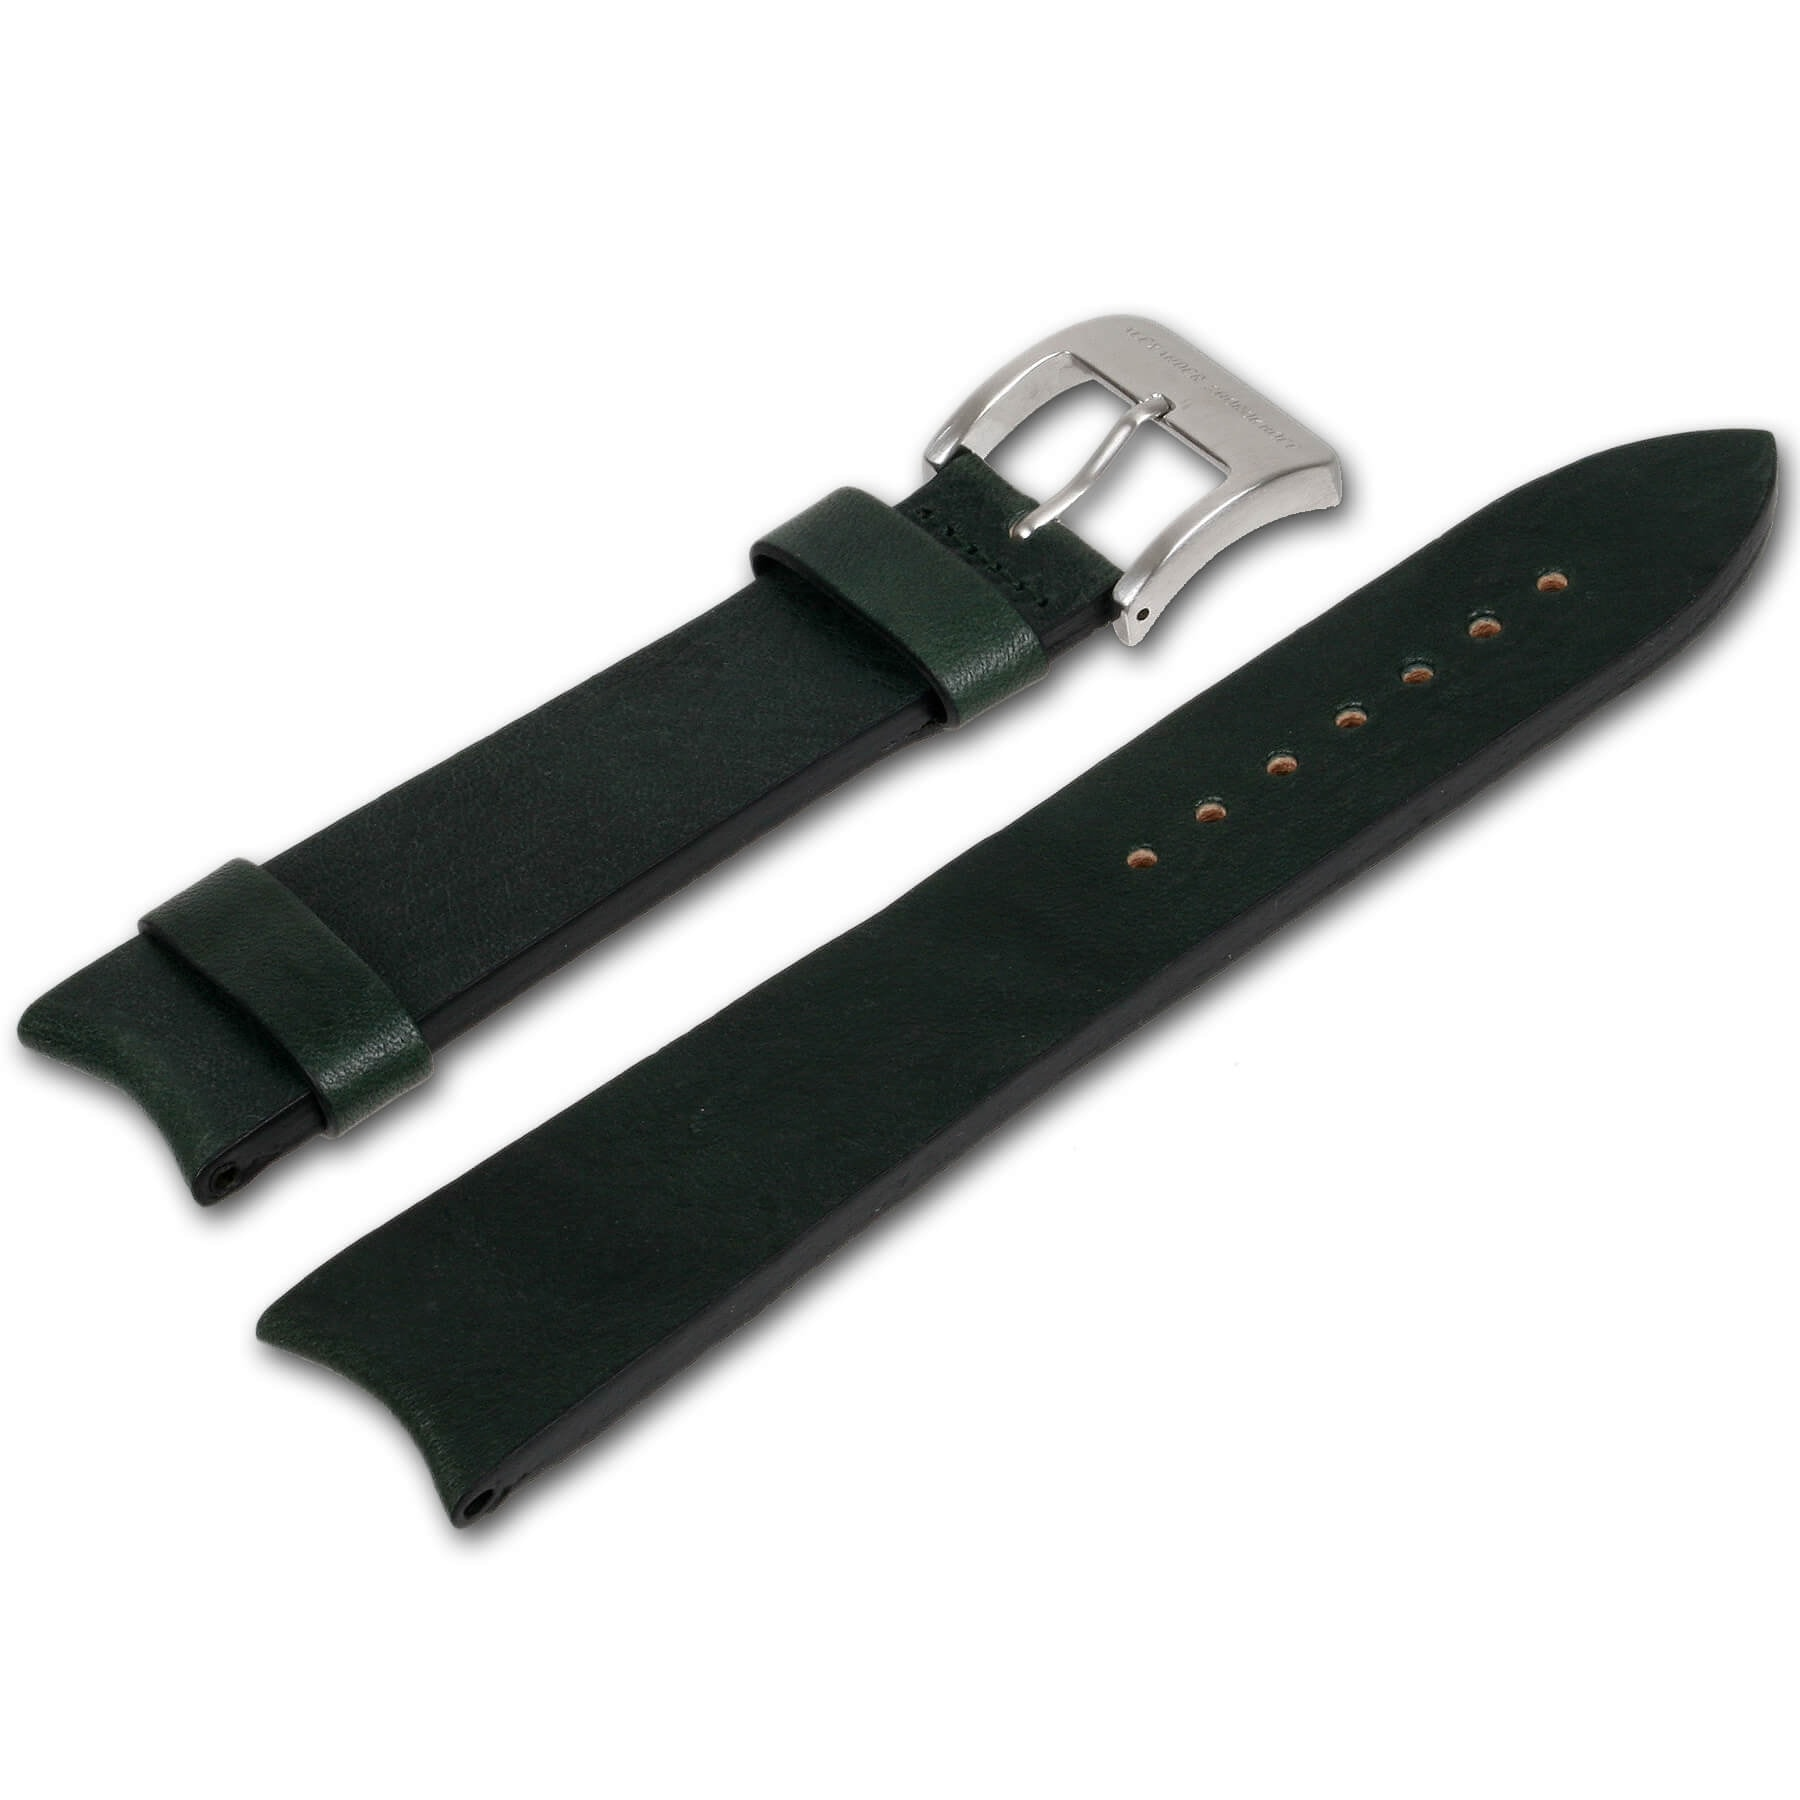 Alexander Shorokhoff - Calfskin strap with vintage look – Green